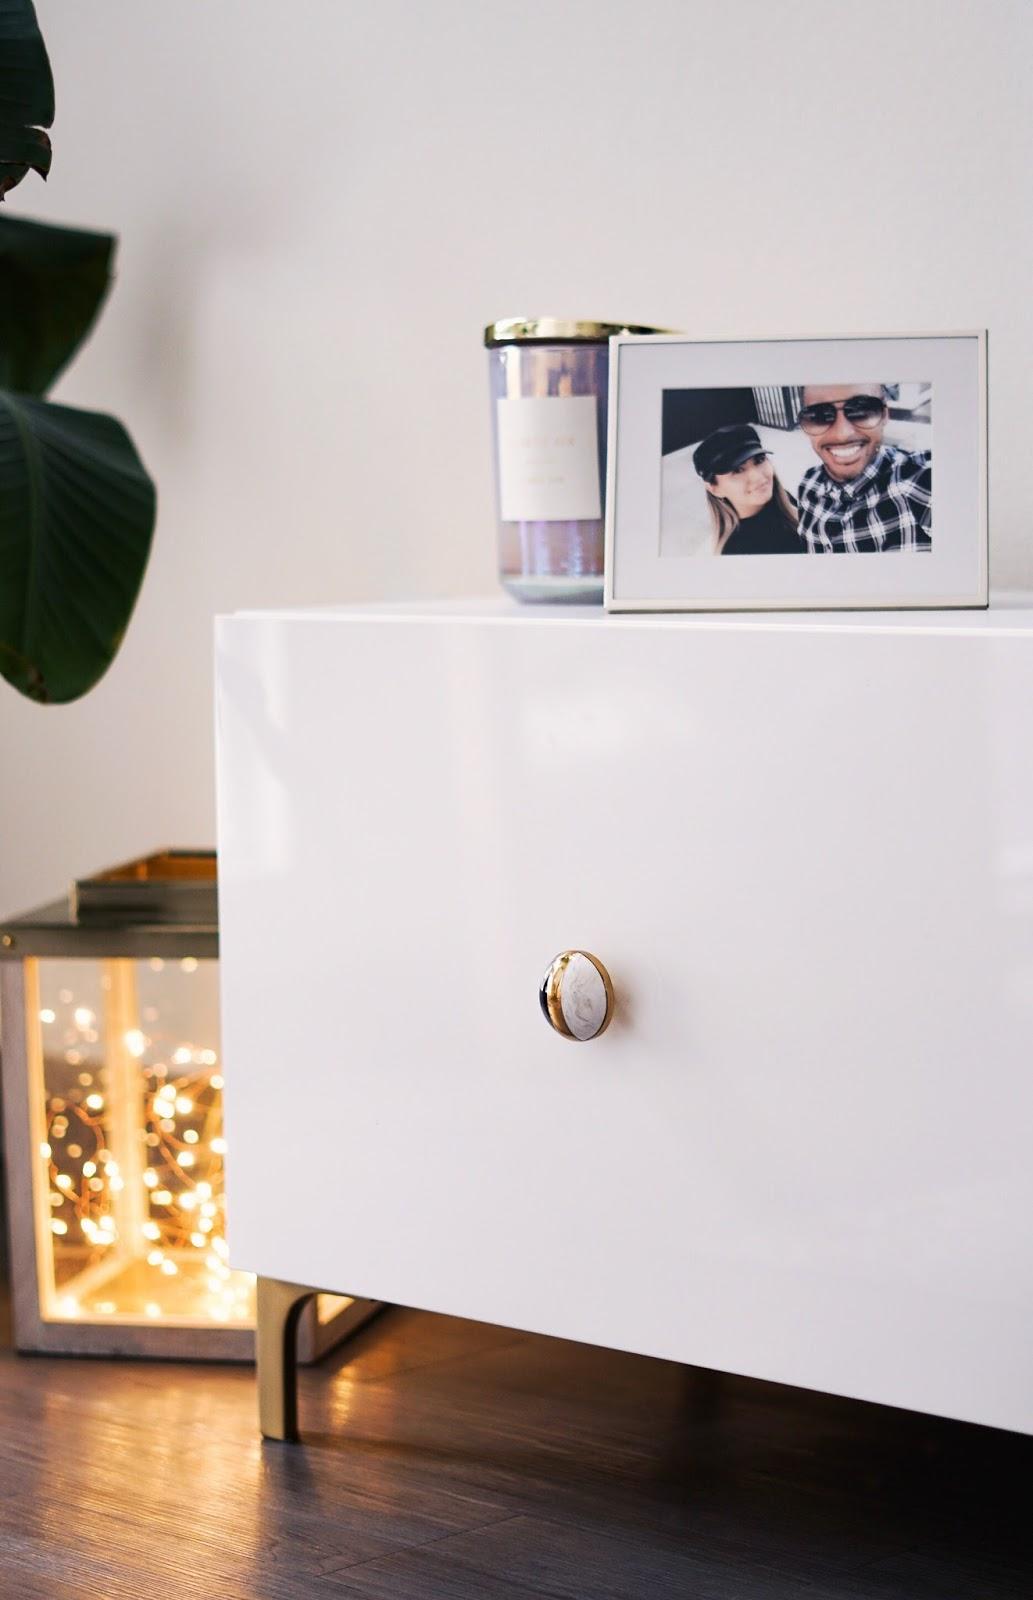 ikea, Ikea furniture hack, Ikea tv stand, tv console, Ikea diy, affordable, living room, cb2, Anthropologie, living room tour, cozy modern, marble coffee table, how to, home decor, living room reveal, hgtv, blogger, lifestyle, Anthropologie knob, cb2 knob, Zara home rug, la loft